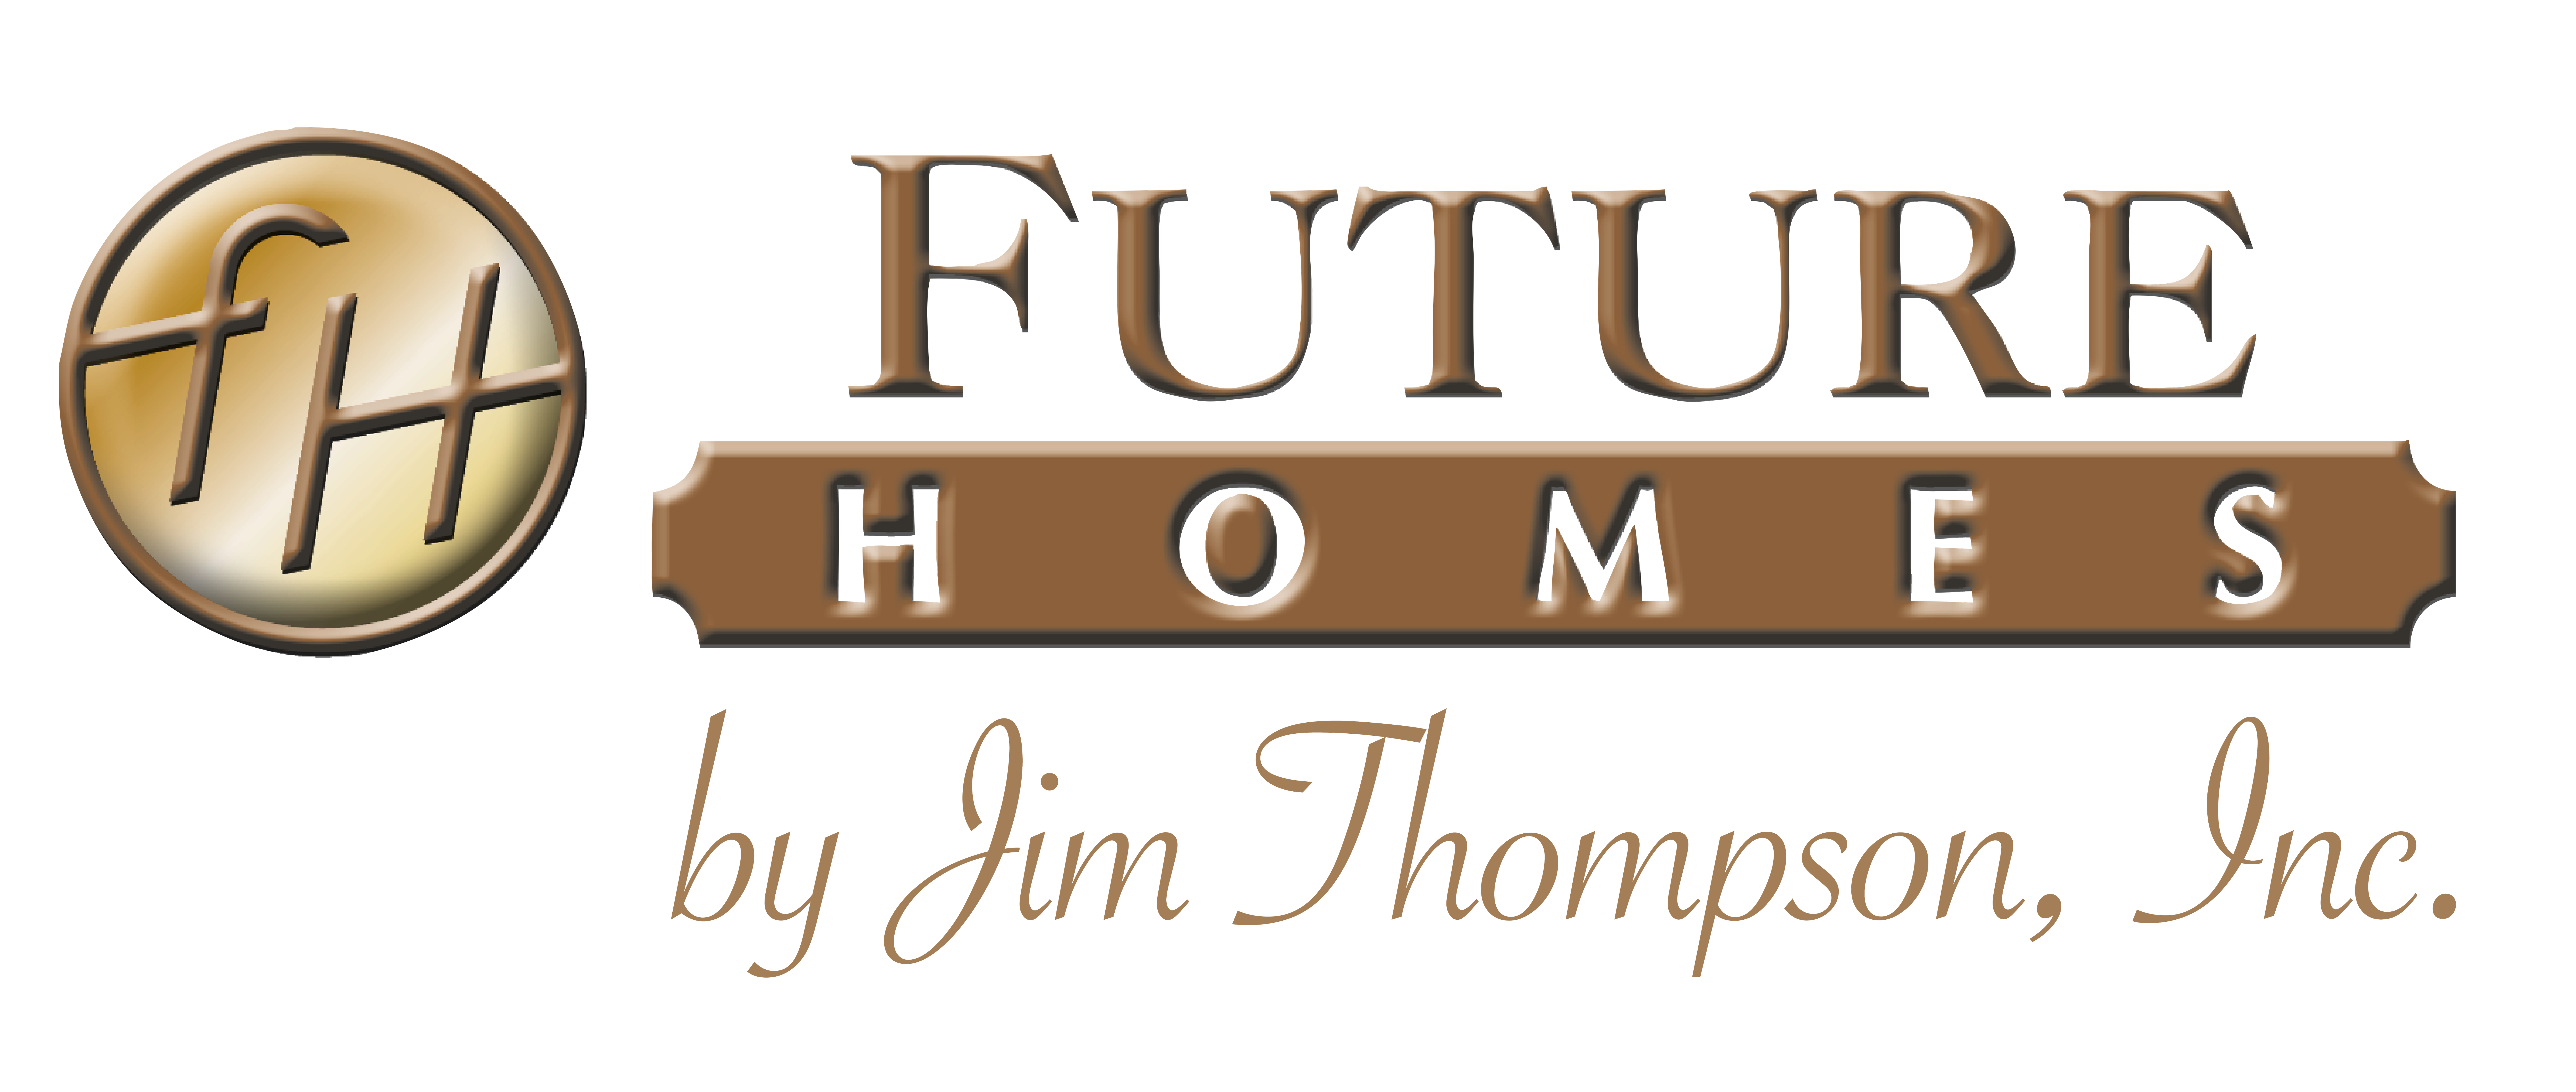 Sponsor Future Homes by Jim Thompson, Inc